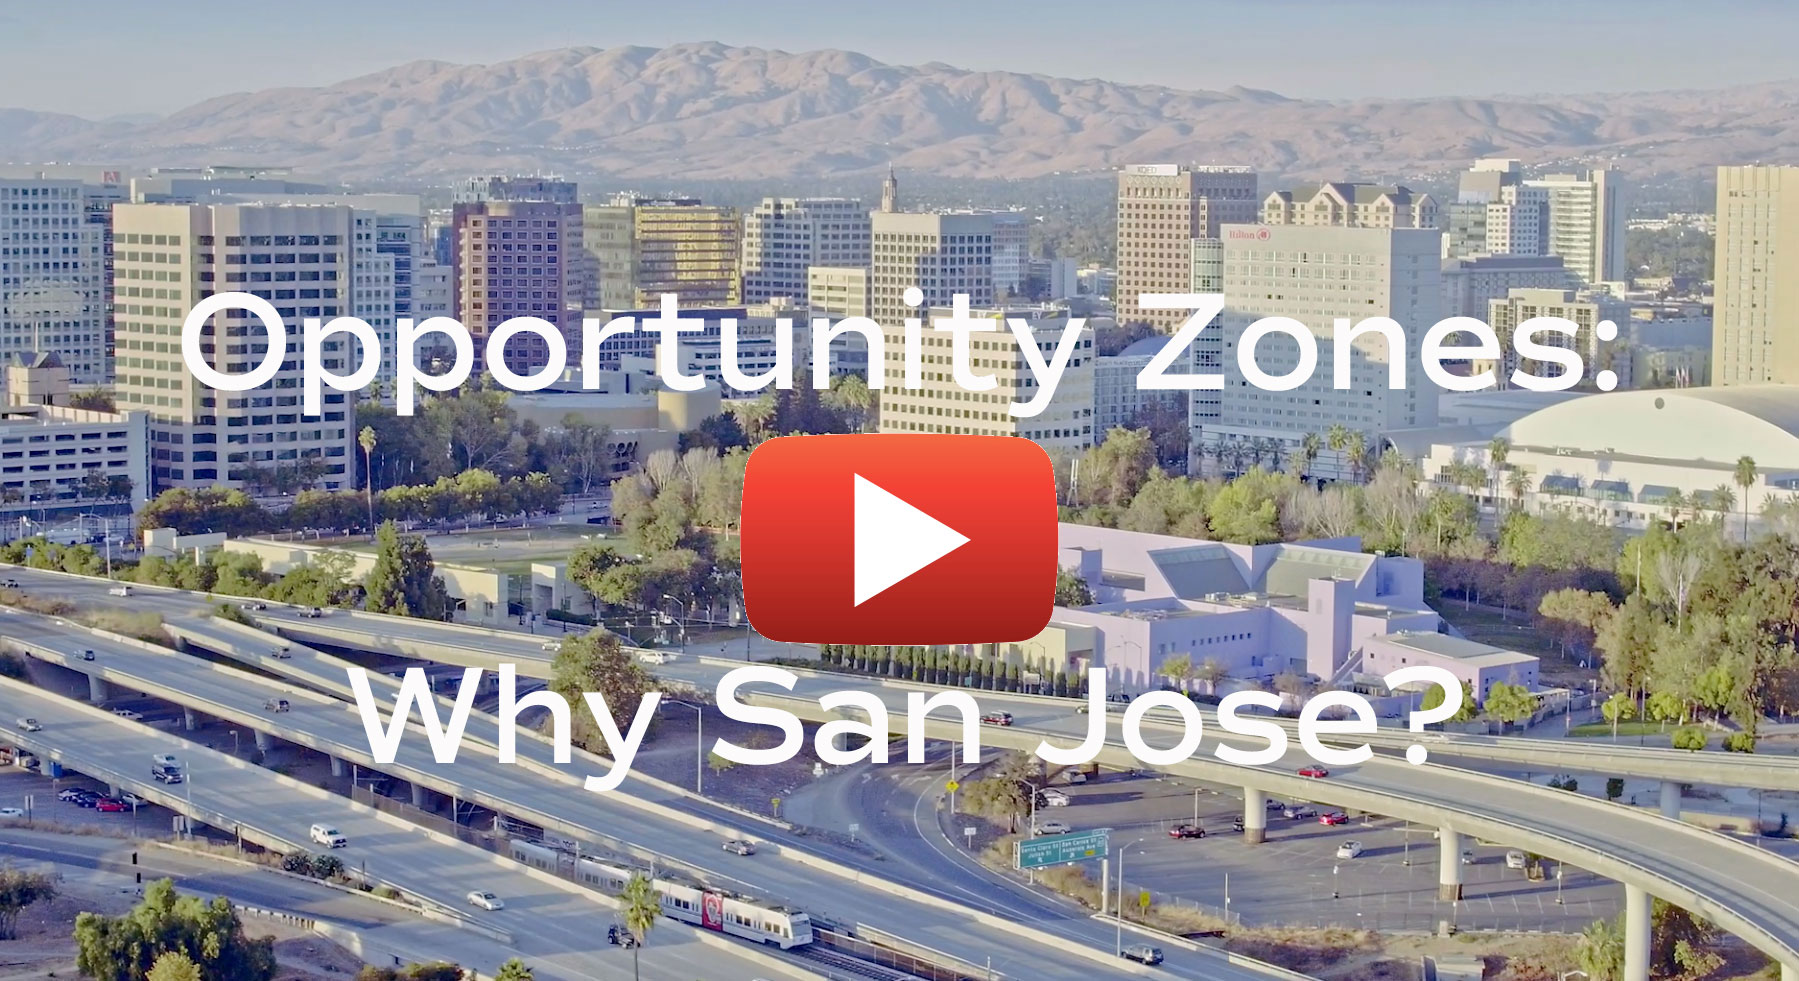 Opportunity Zones: Why San Jose?